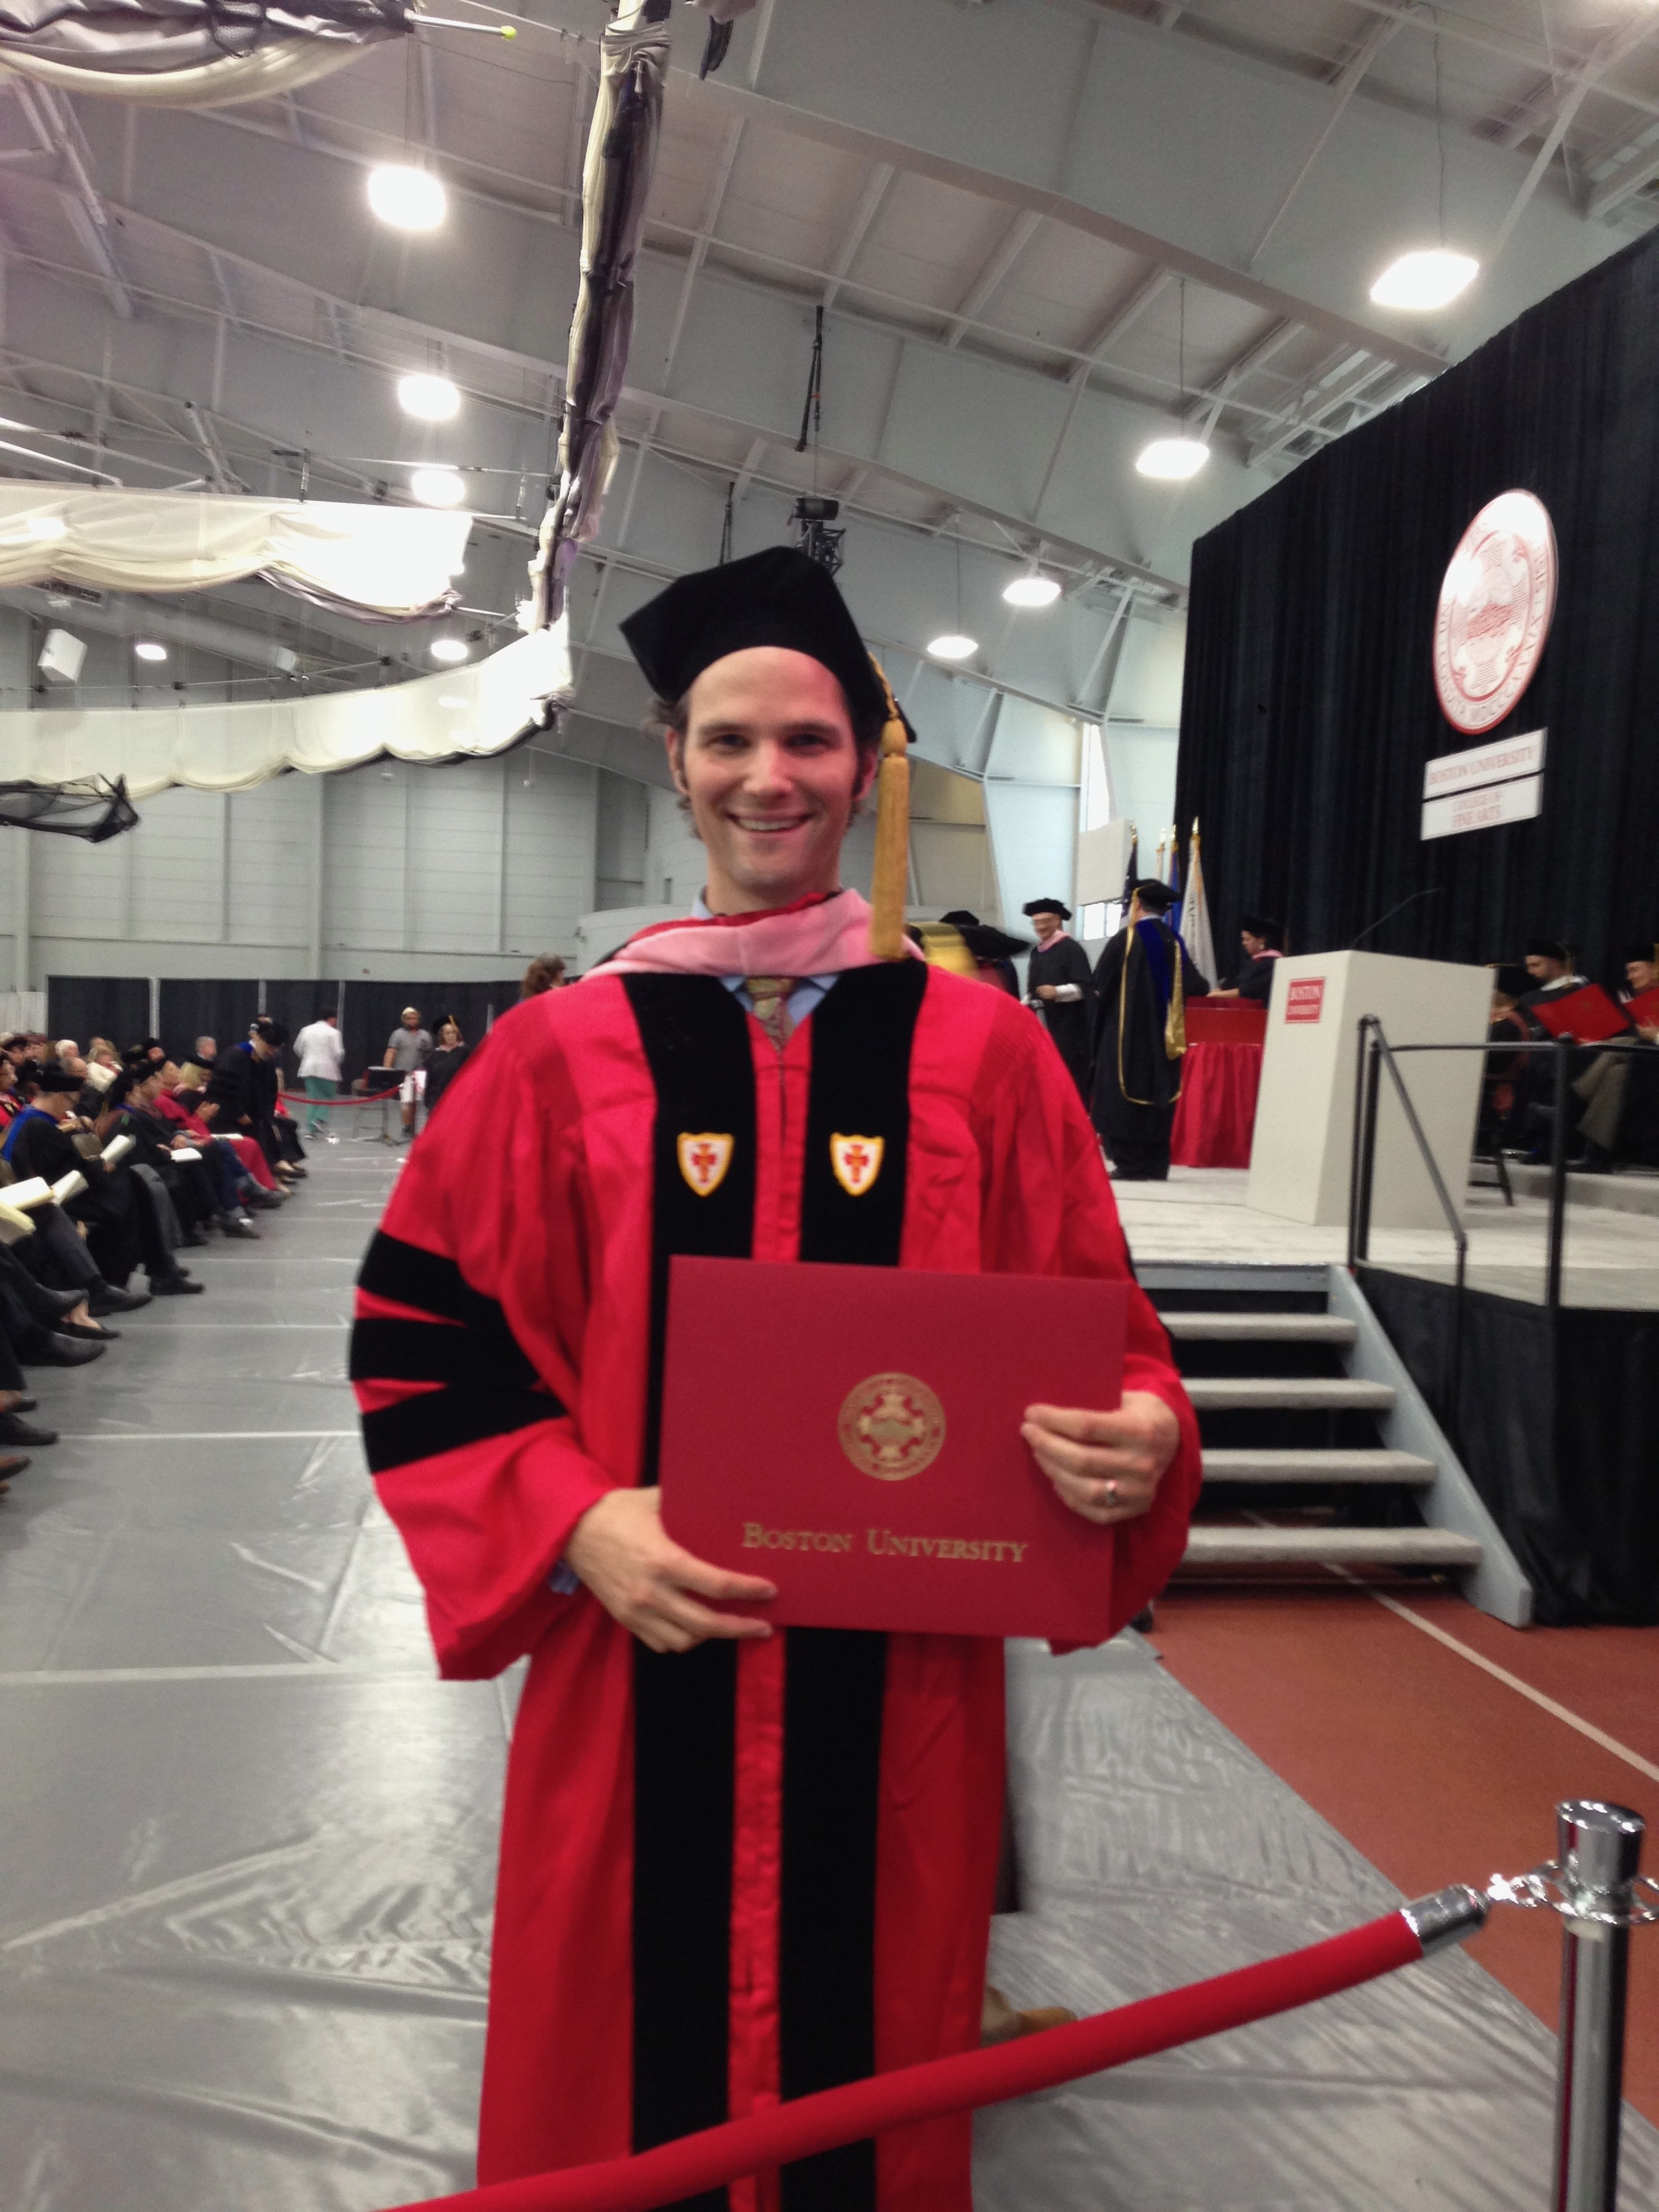 In regalia for my DMA graduation from Boston University.